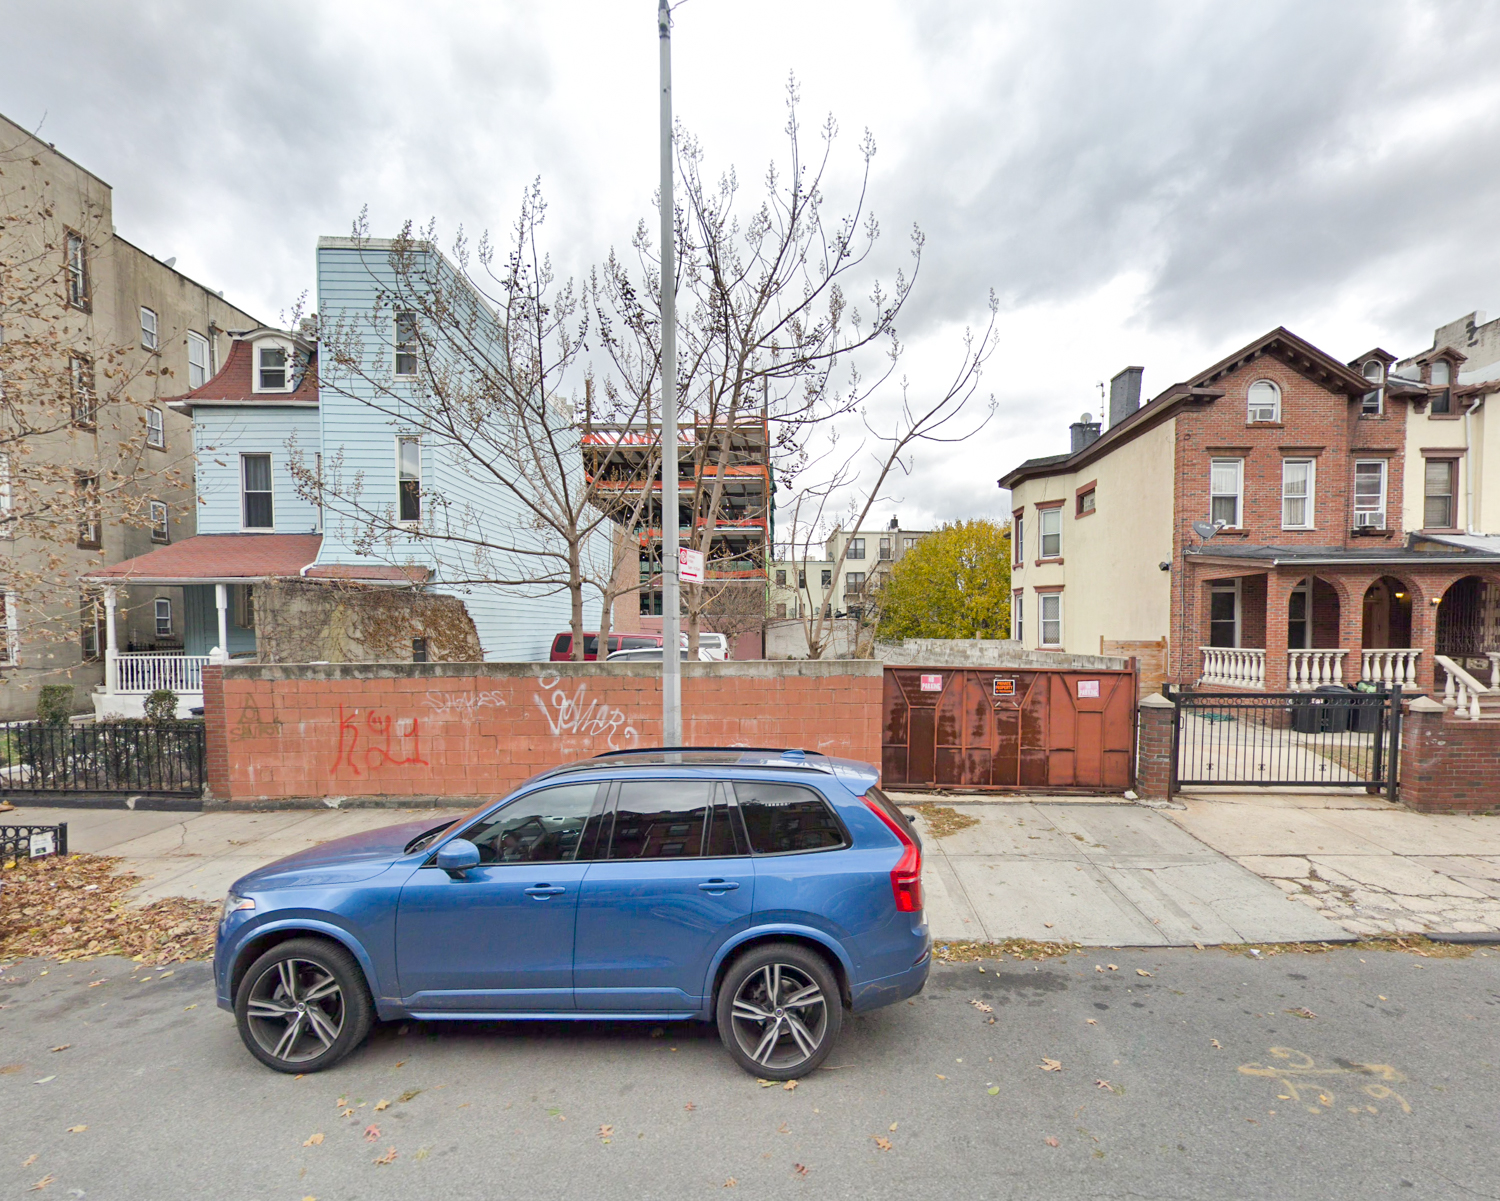 171, 173 Lefferts Place, via Google Maps